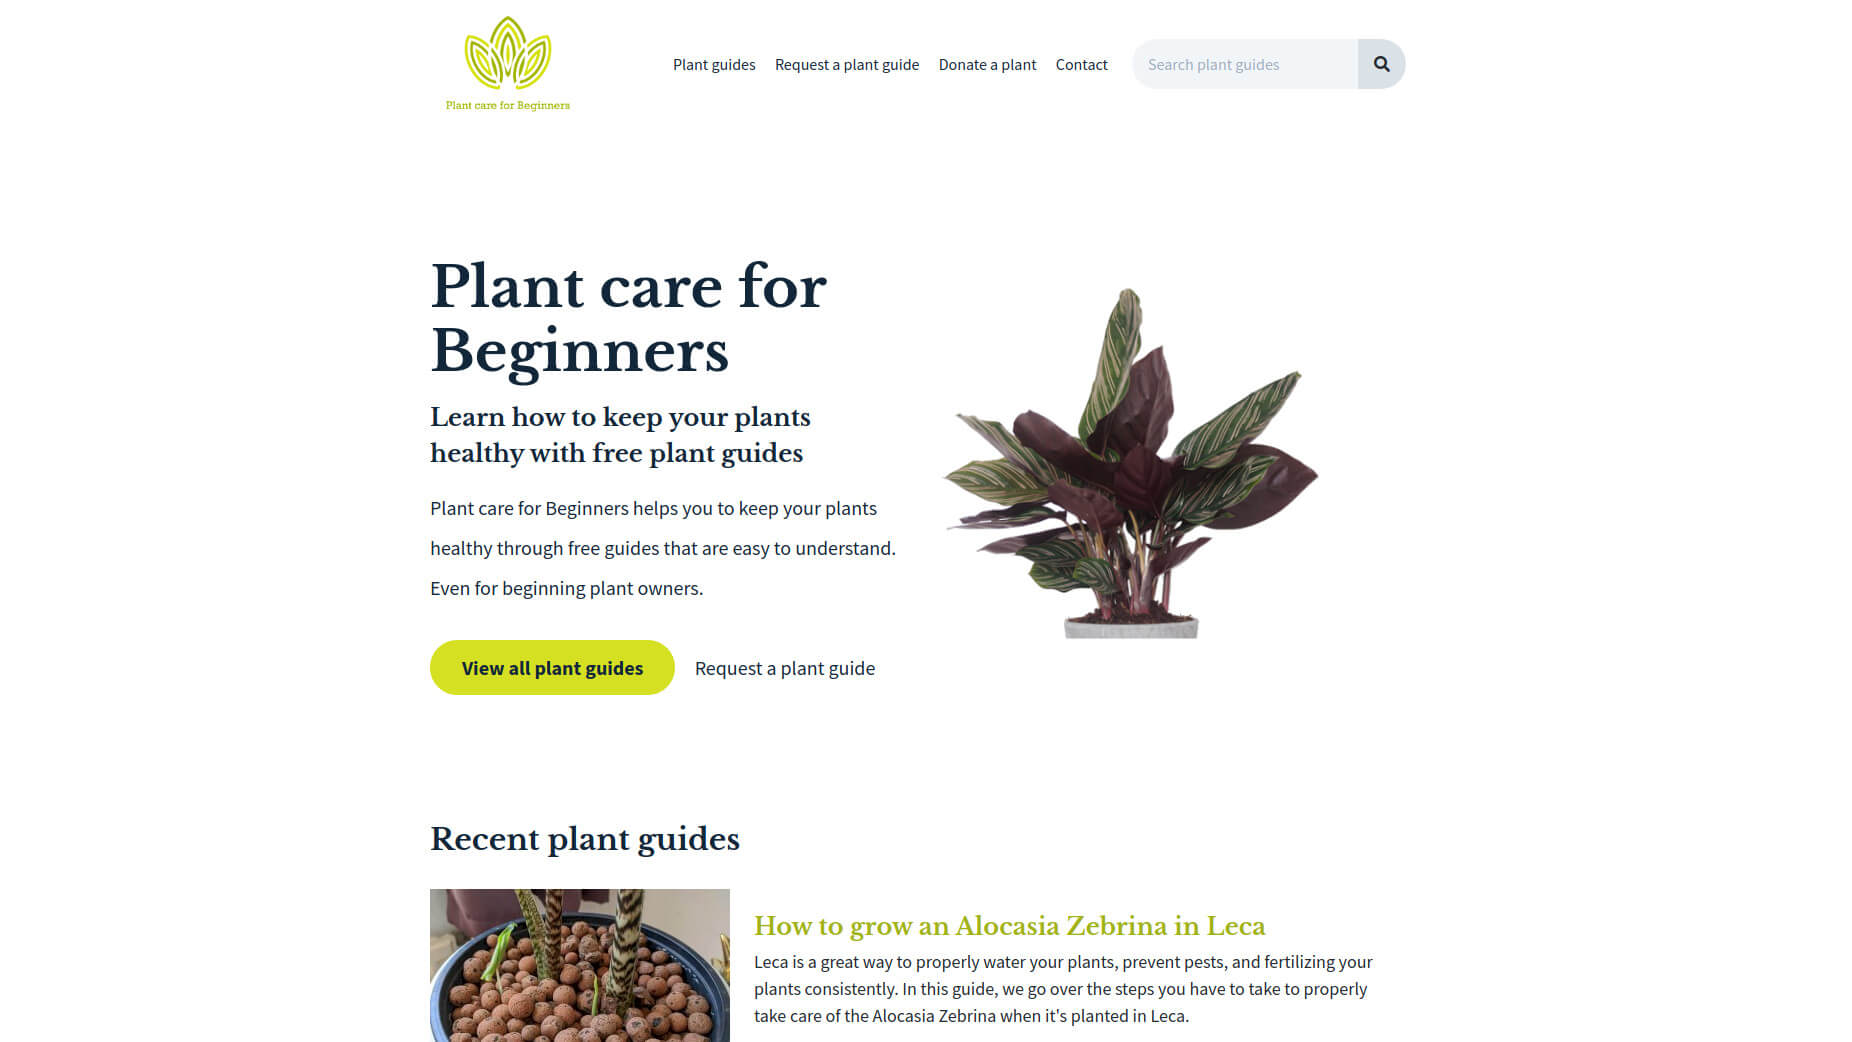 Plant care for beginners